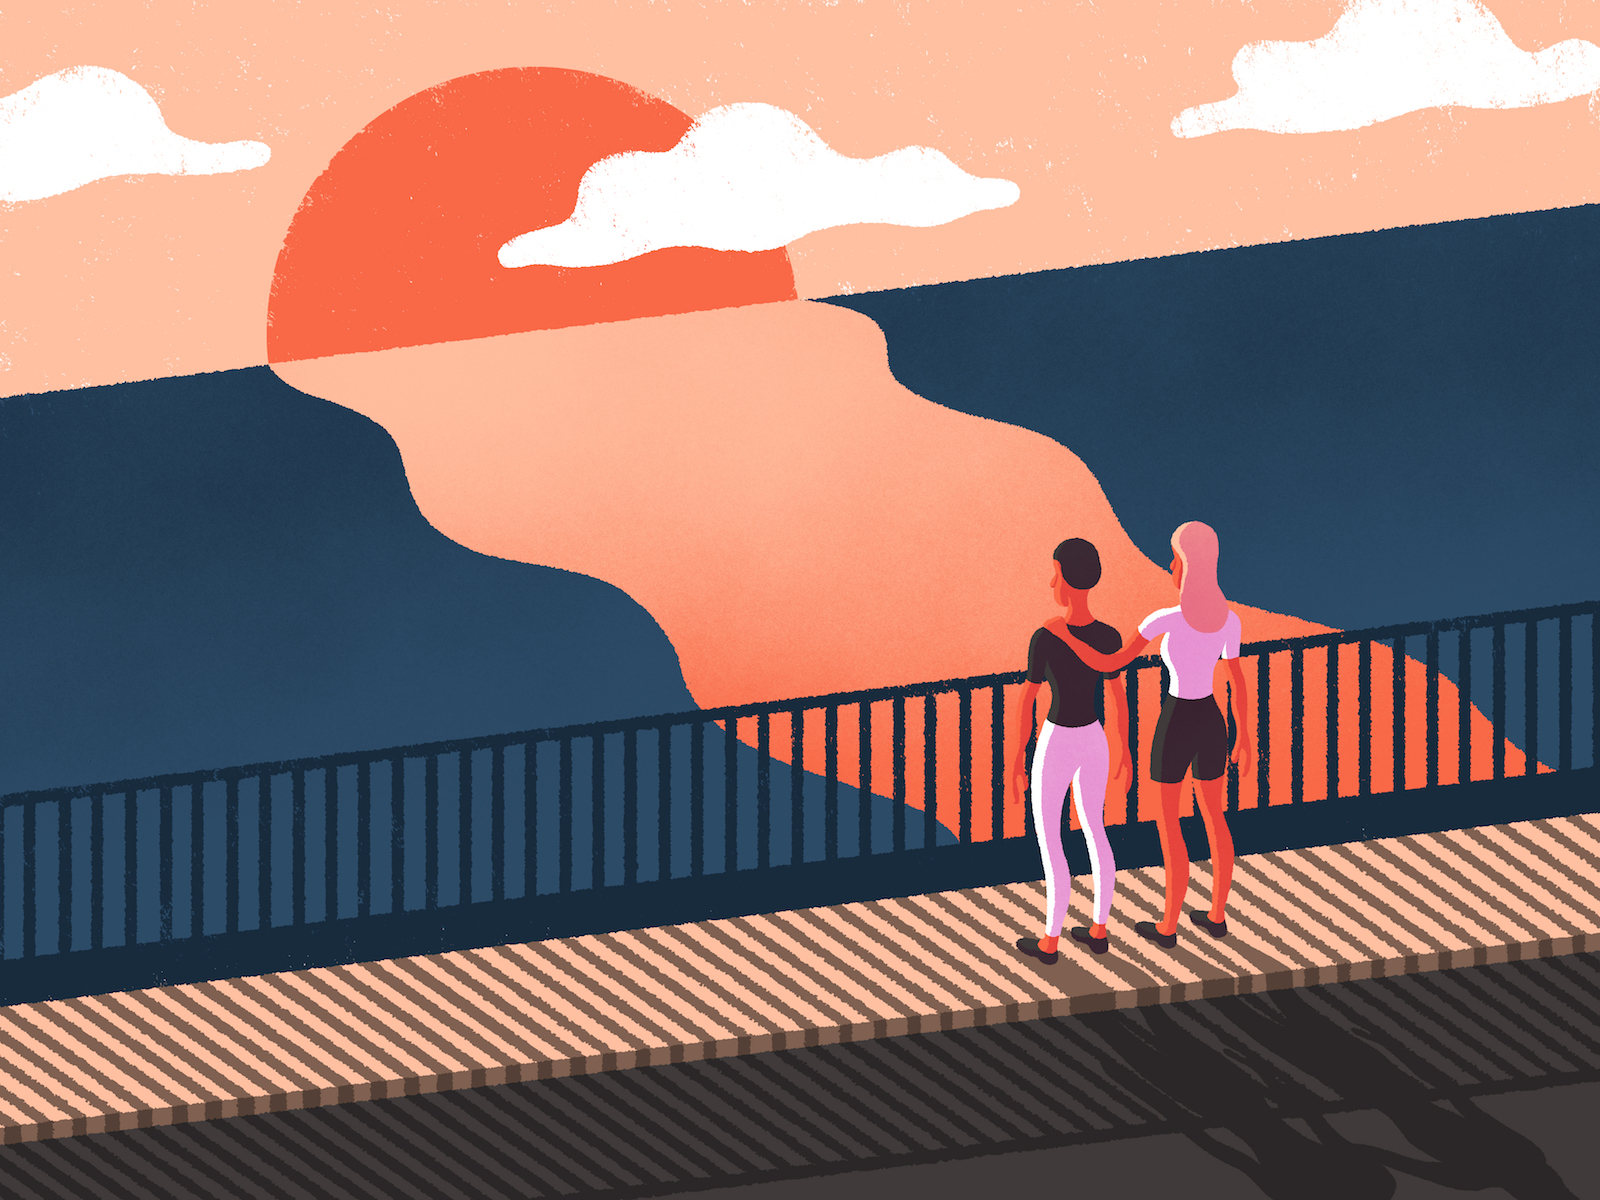 03_MHC_Illustration-Sunset_Netland.jpg